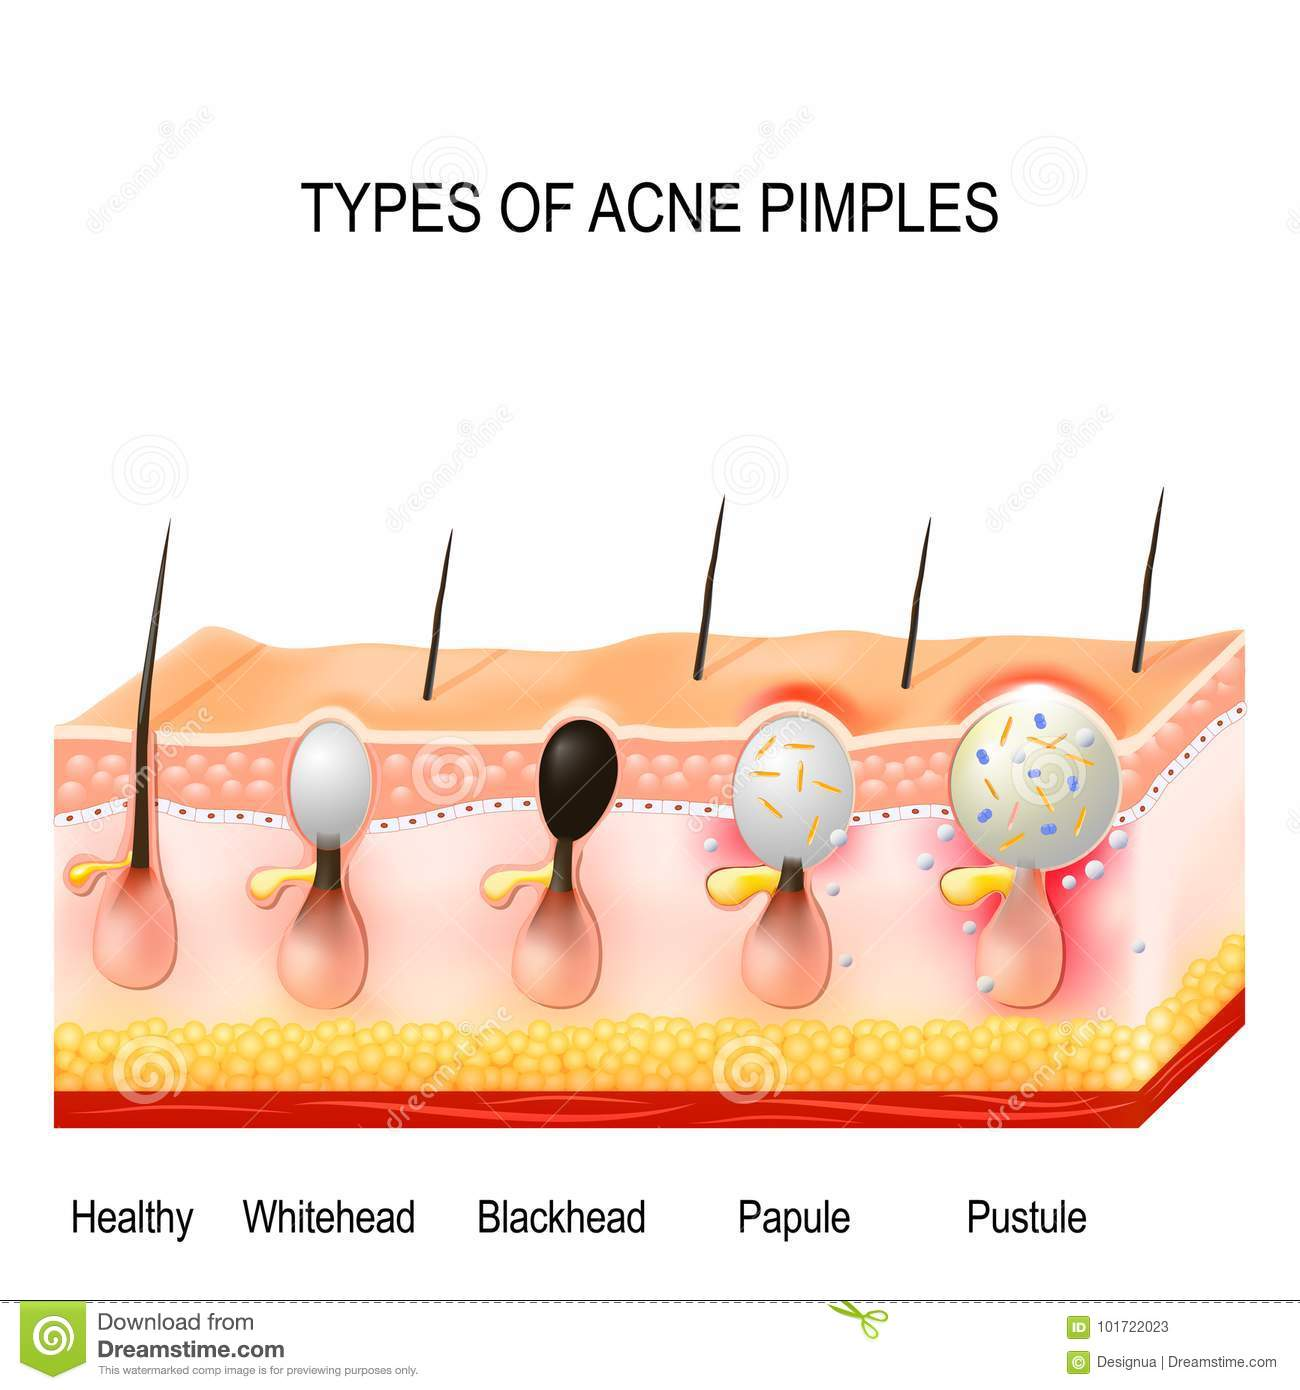 Types of acne pimples stock vector  Illustration of